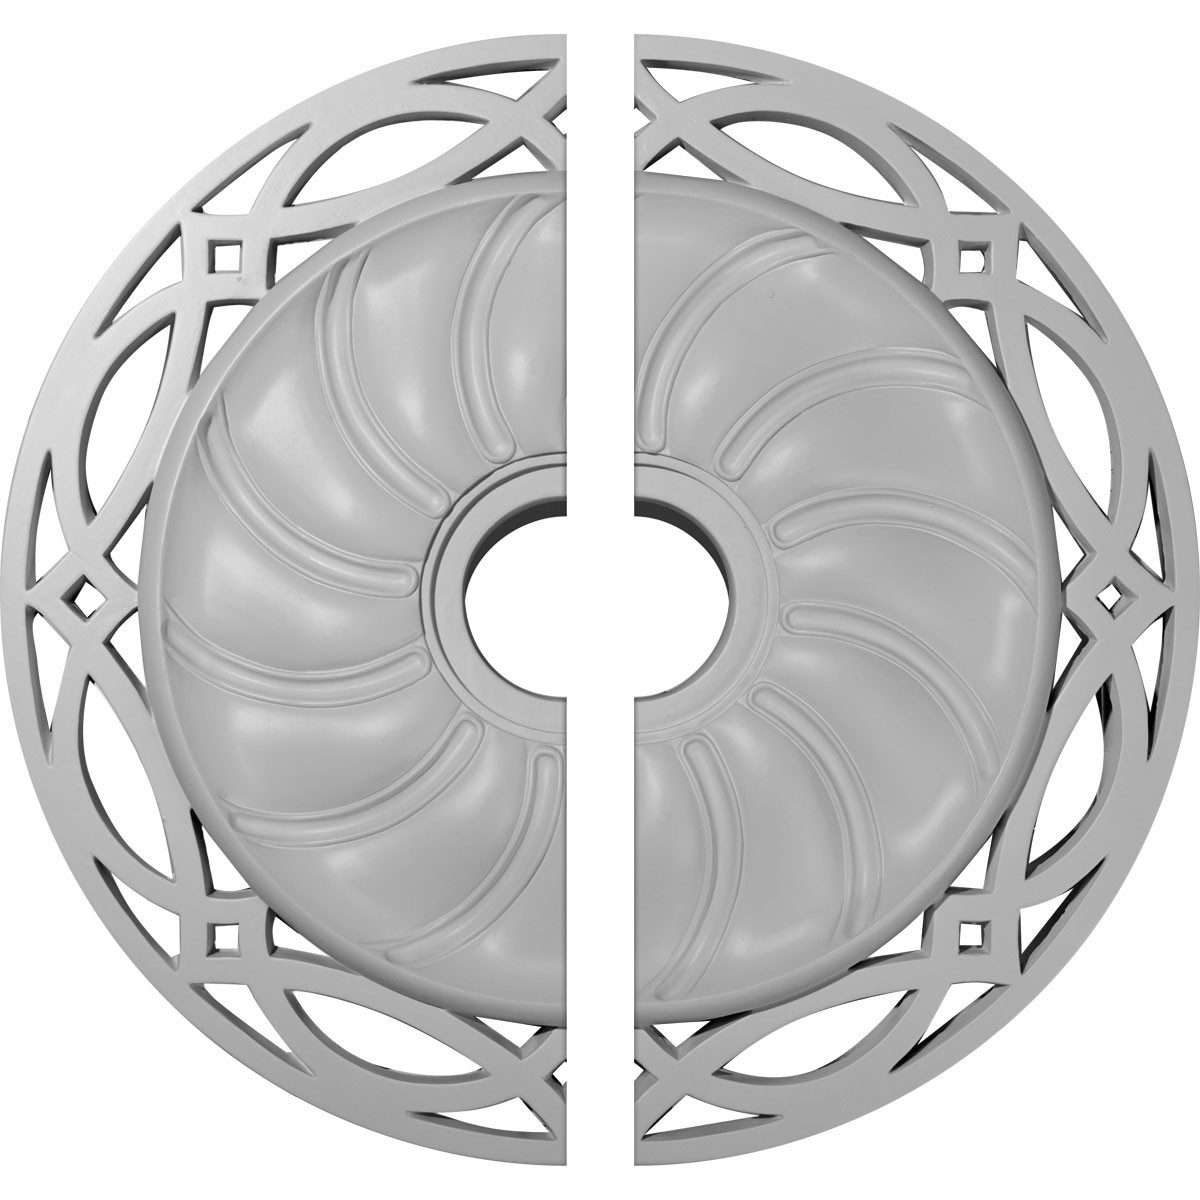 """EM-CM26LO2 - 26 5/8""""OD x 4 1/2""""ID x 1 3/8""""P Loera Ceiling Medallion, Two Piece (Fits Canopies up to 6 1/4"""")"""